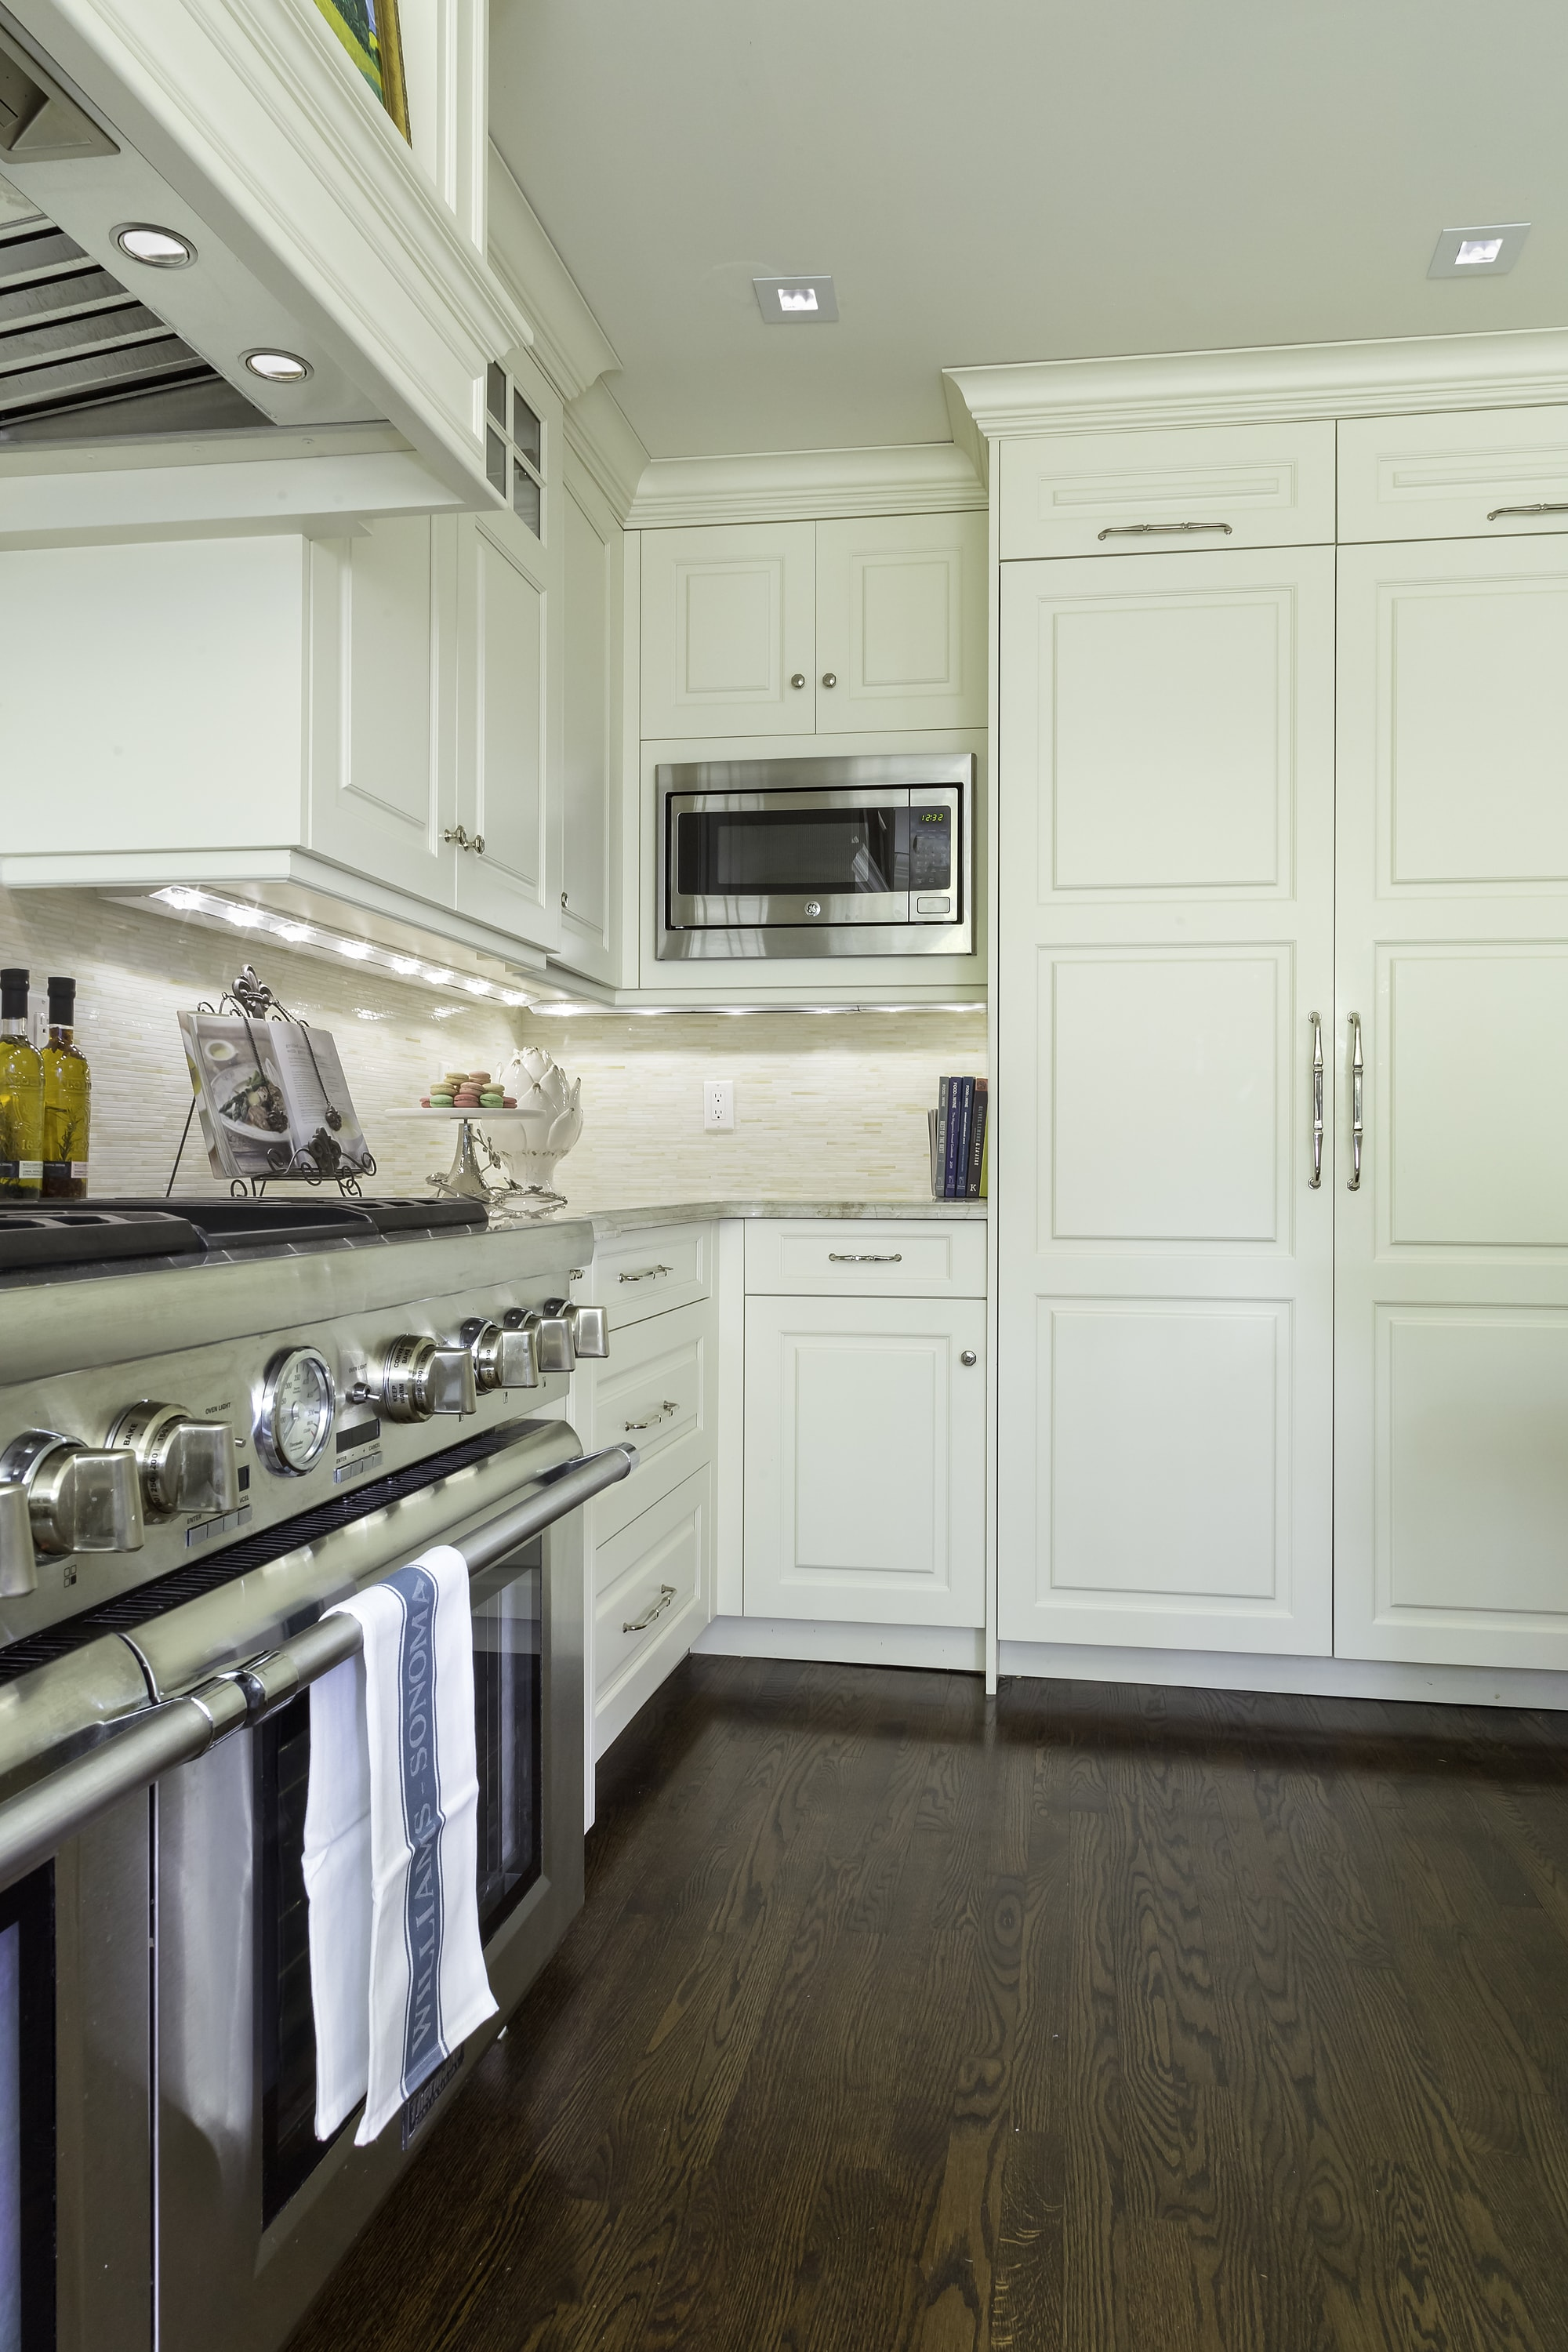 Traditional style kitchen with a stainless steel range